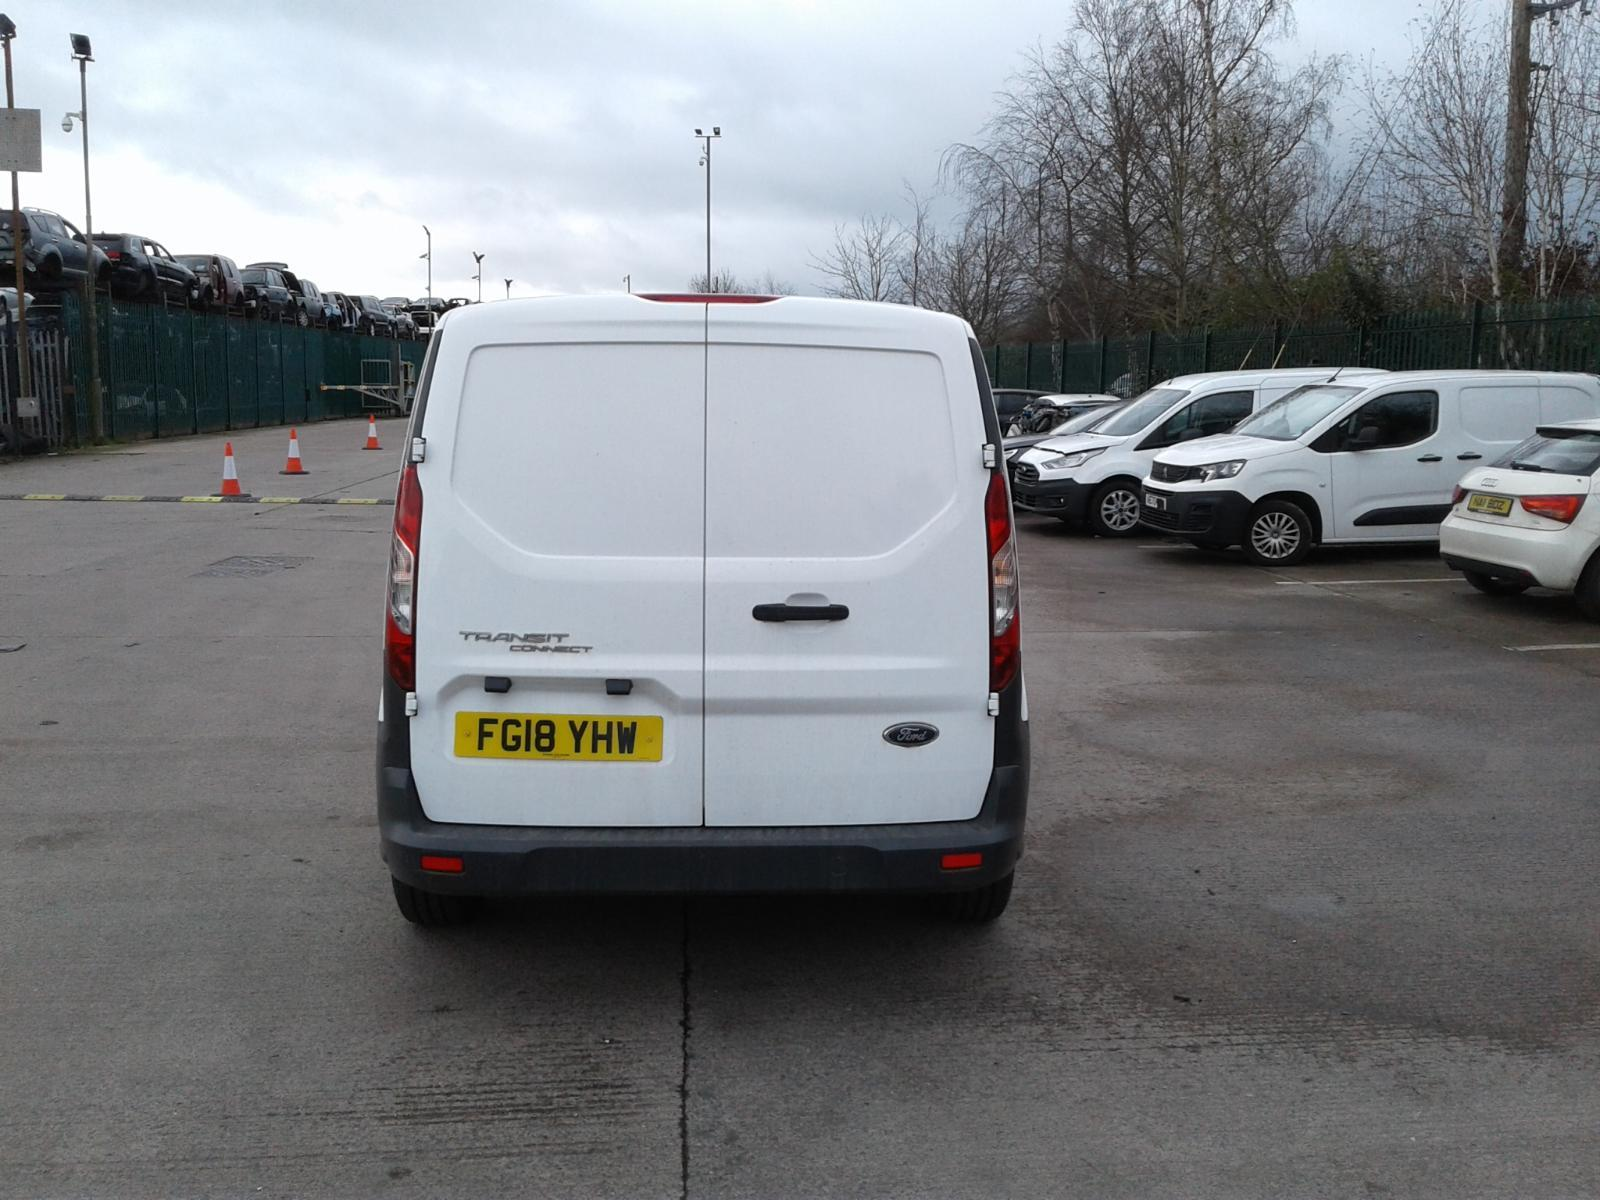 2018 TRANSIT CONNECT FOR SALE Image